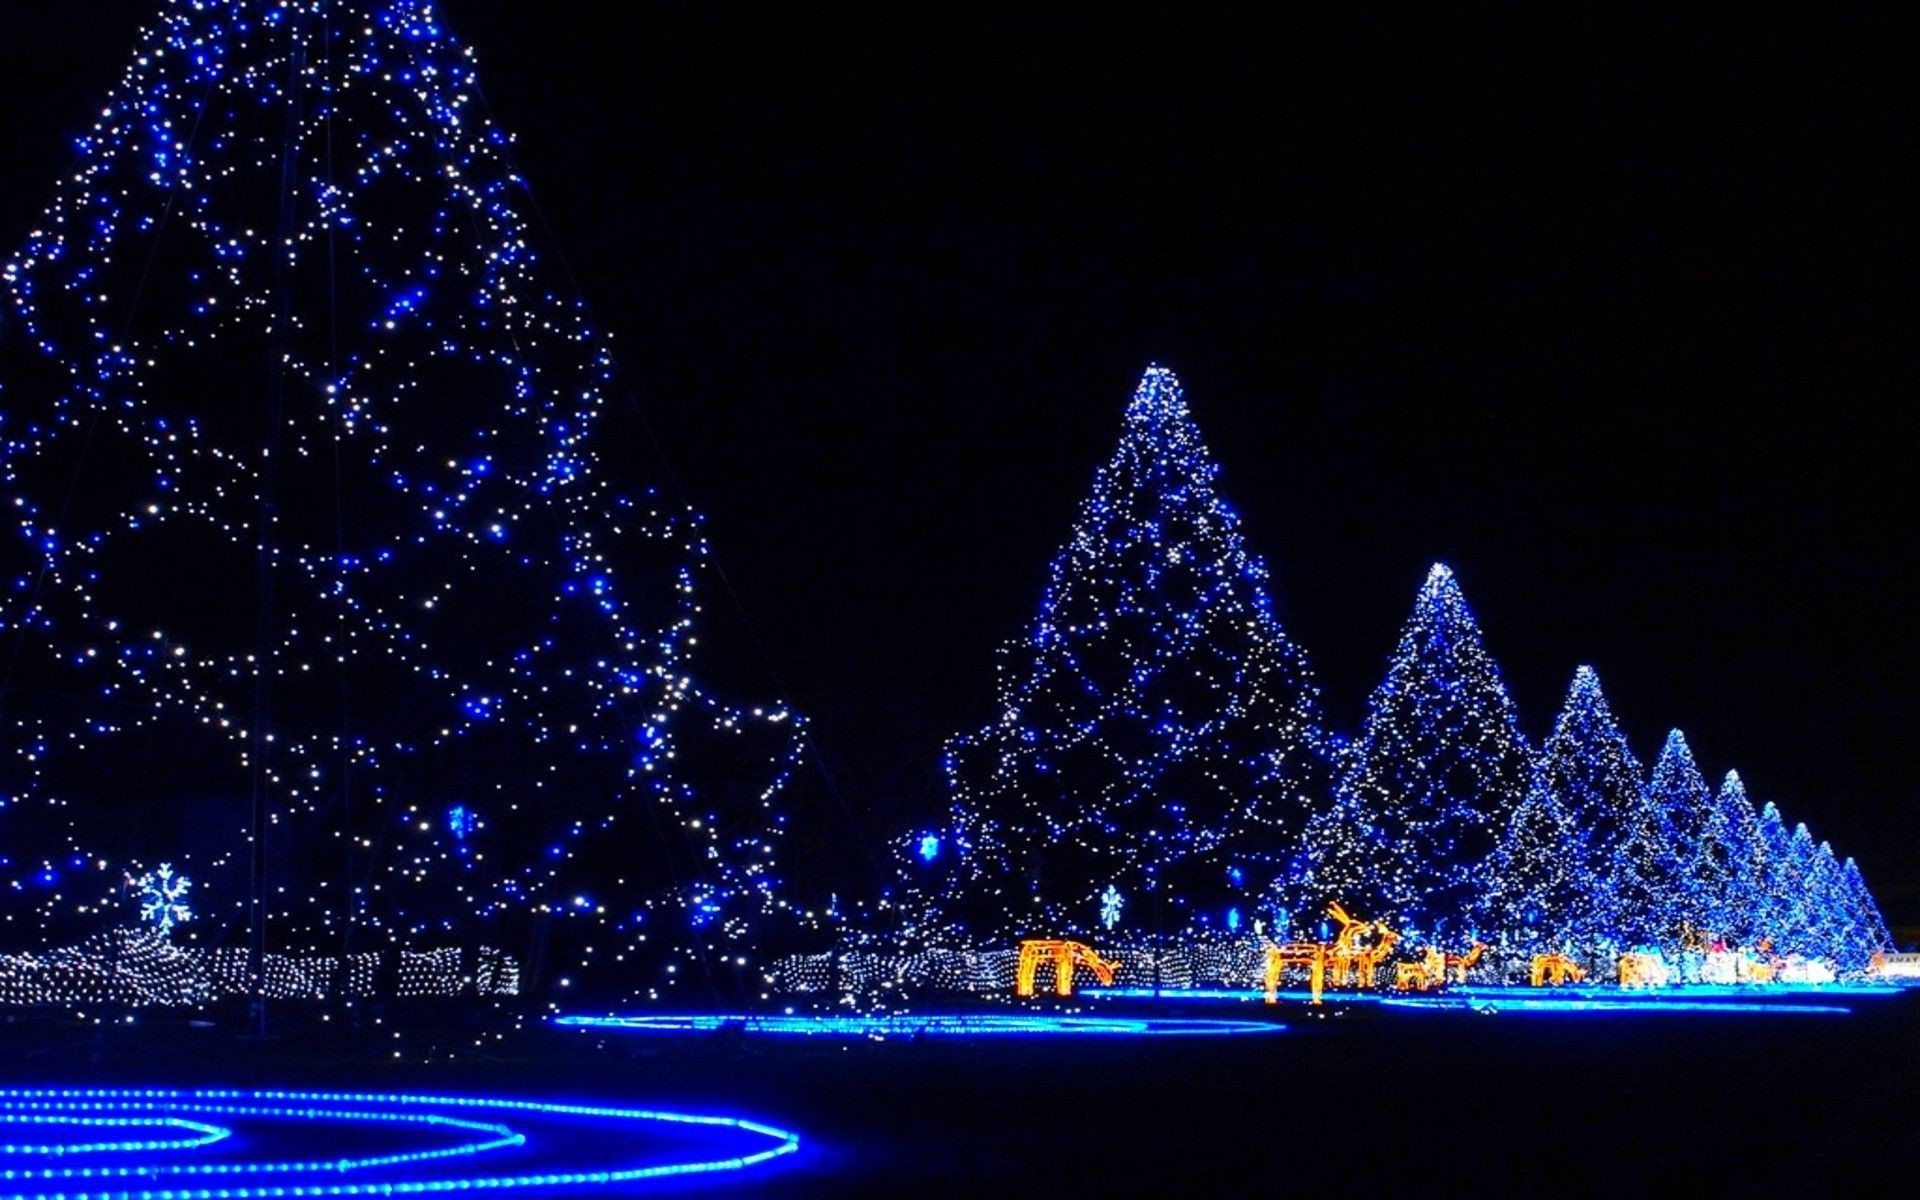 1920x1200 Christmas trees covered in lights merry christmas holiday holidays hd  wallpaper.